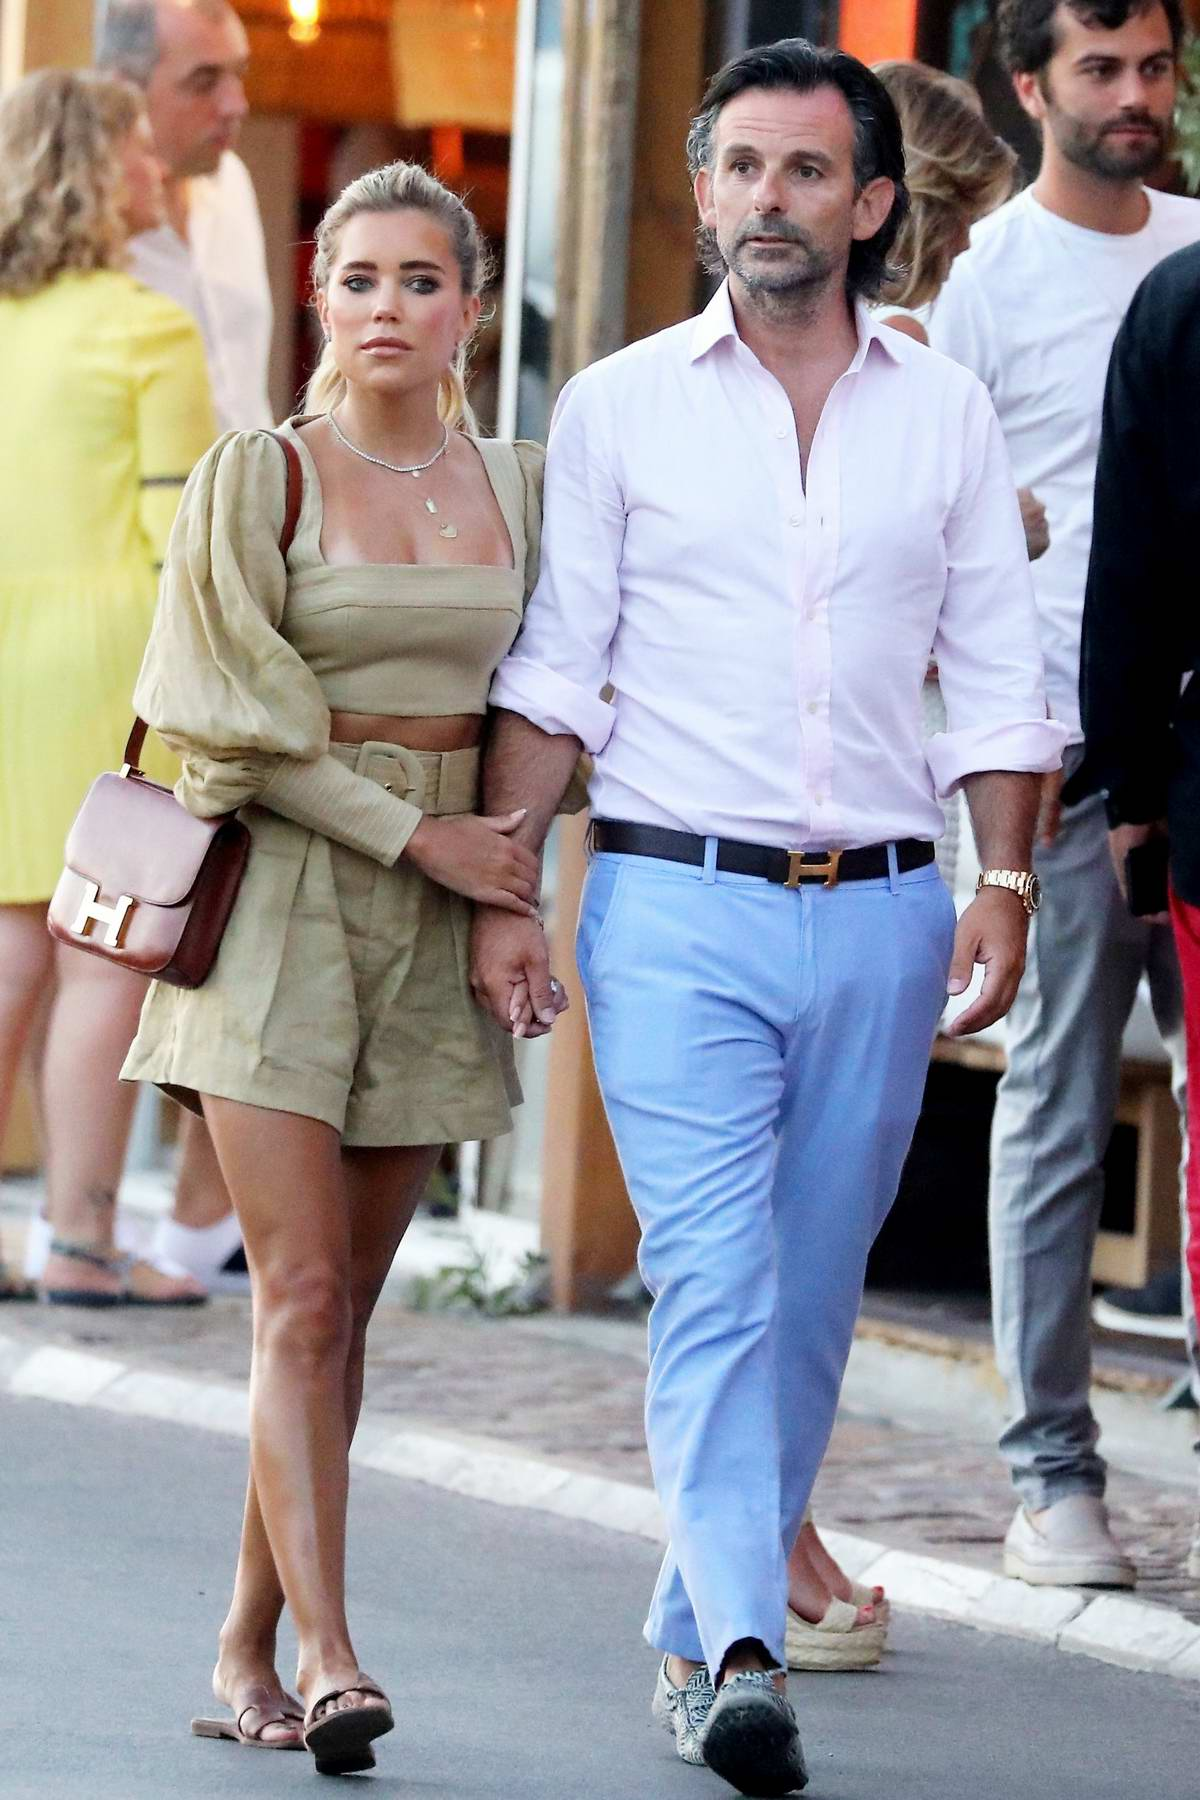 Sylvie Meis and Niclas Castello take a stroll through the port of Saint-Tropez, France